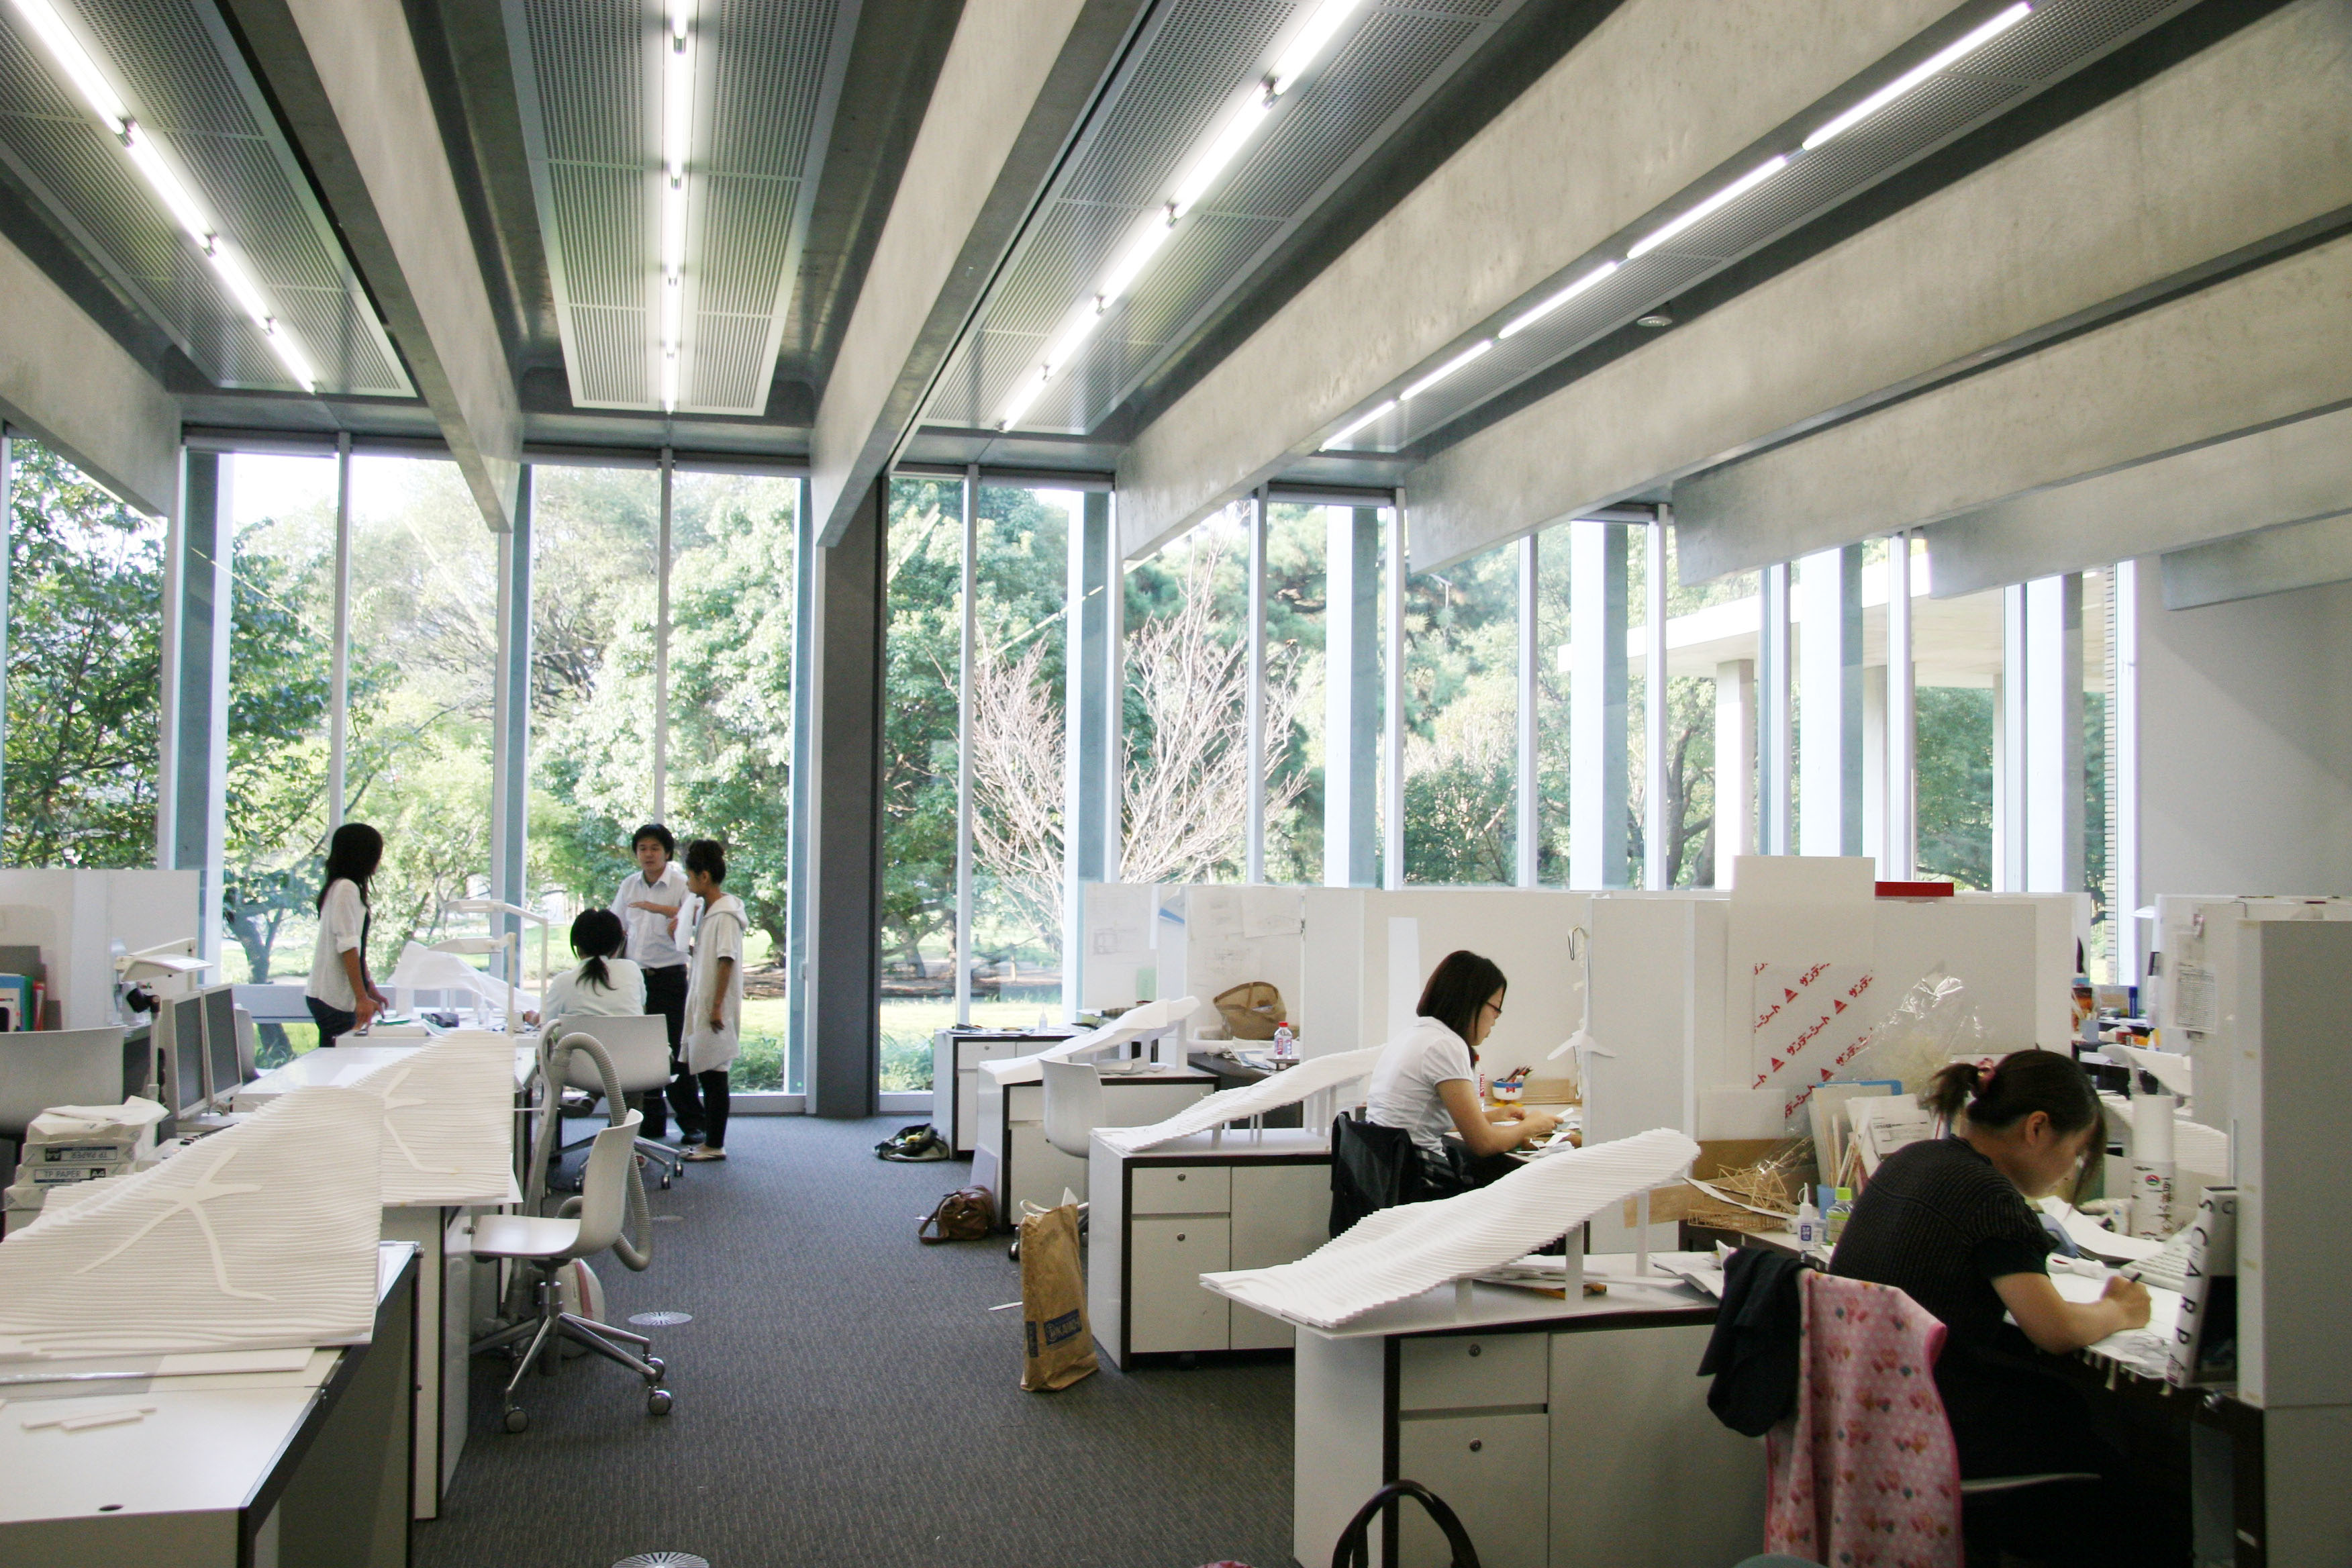 Mukogawa women 39 s university architecture studio for U of m architecture